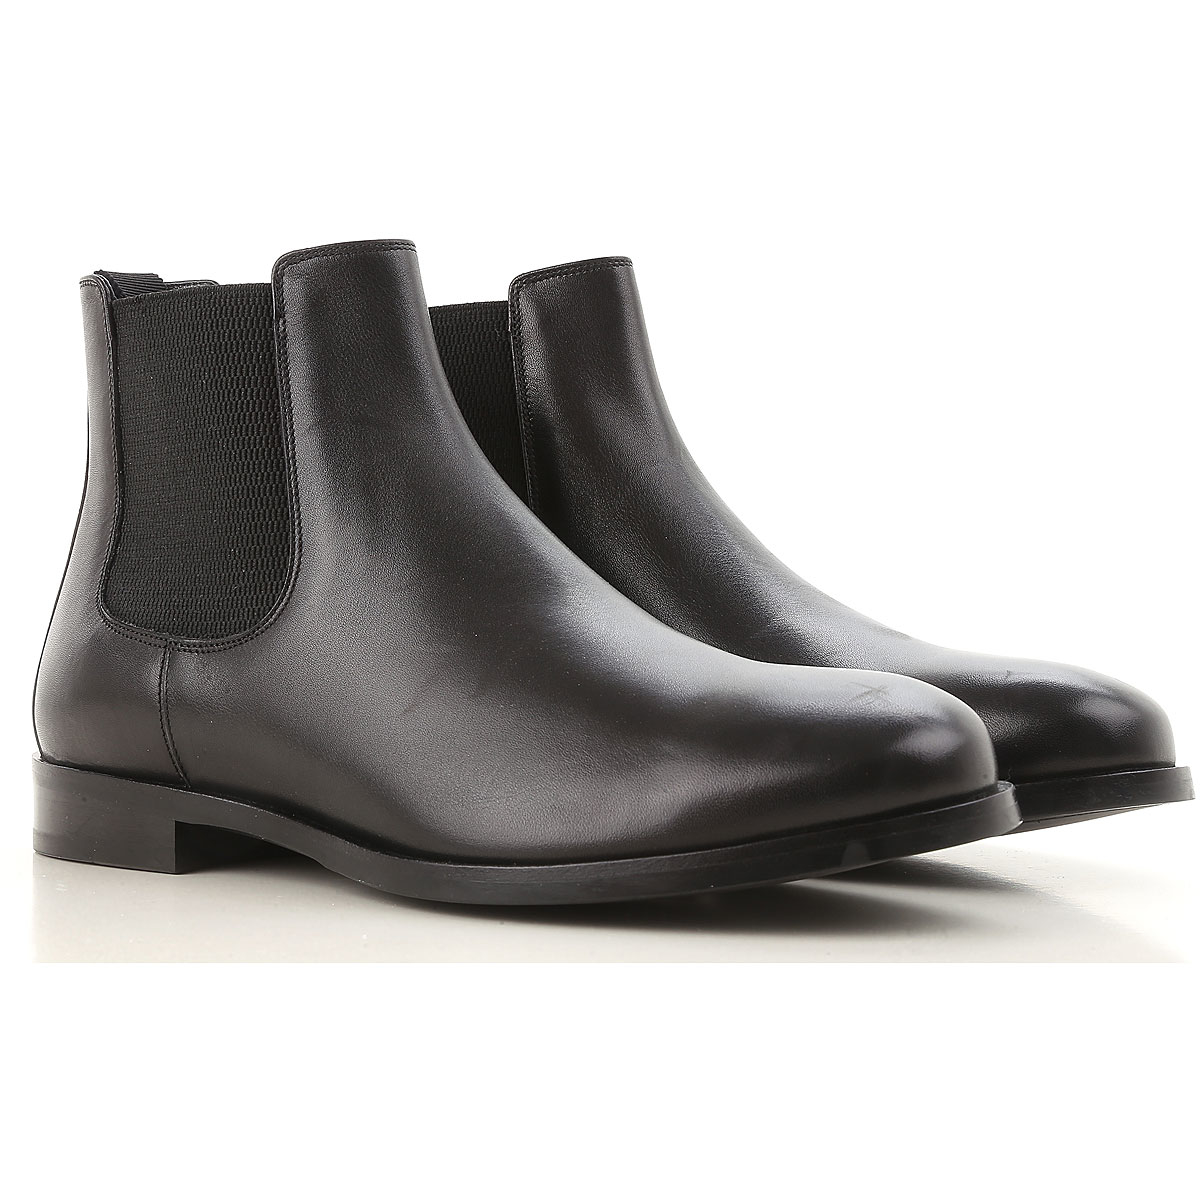 Dolce & Gabbana Boots for Men Booties On Sale in Outlet Canada - GOOFASH - Mens BOOTS